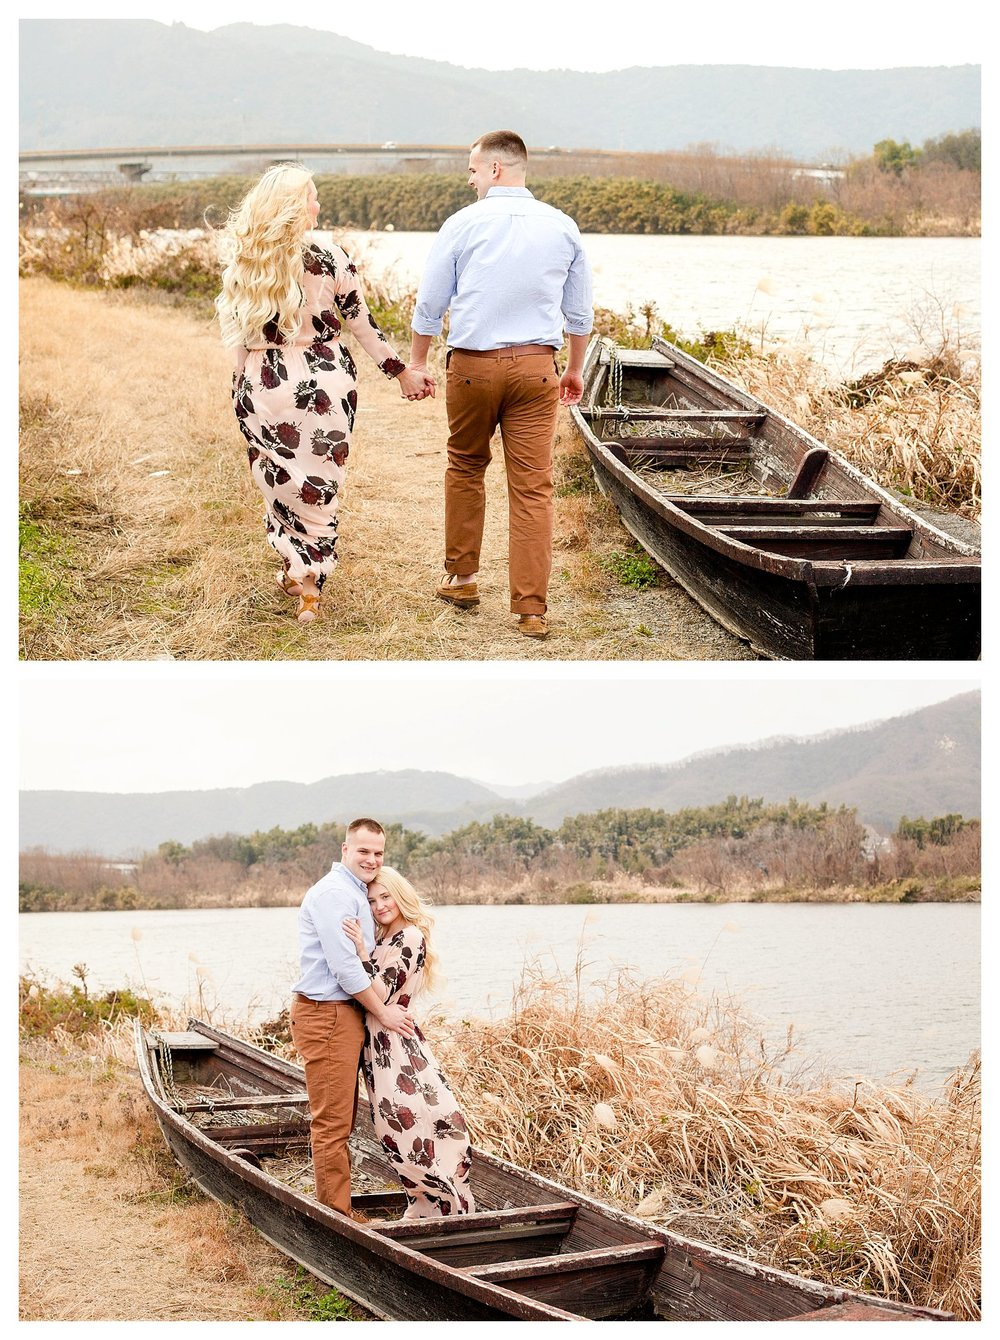 engagement_photos_photographer_Saint_Louis_MO_Kansas_City_Missouri_Springfield_Lake_Ozark_Scenic_Destination_Videography_Videographer_0331.jpg